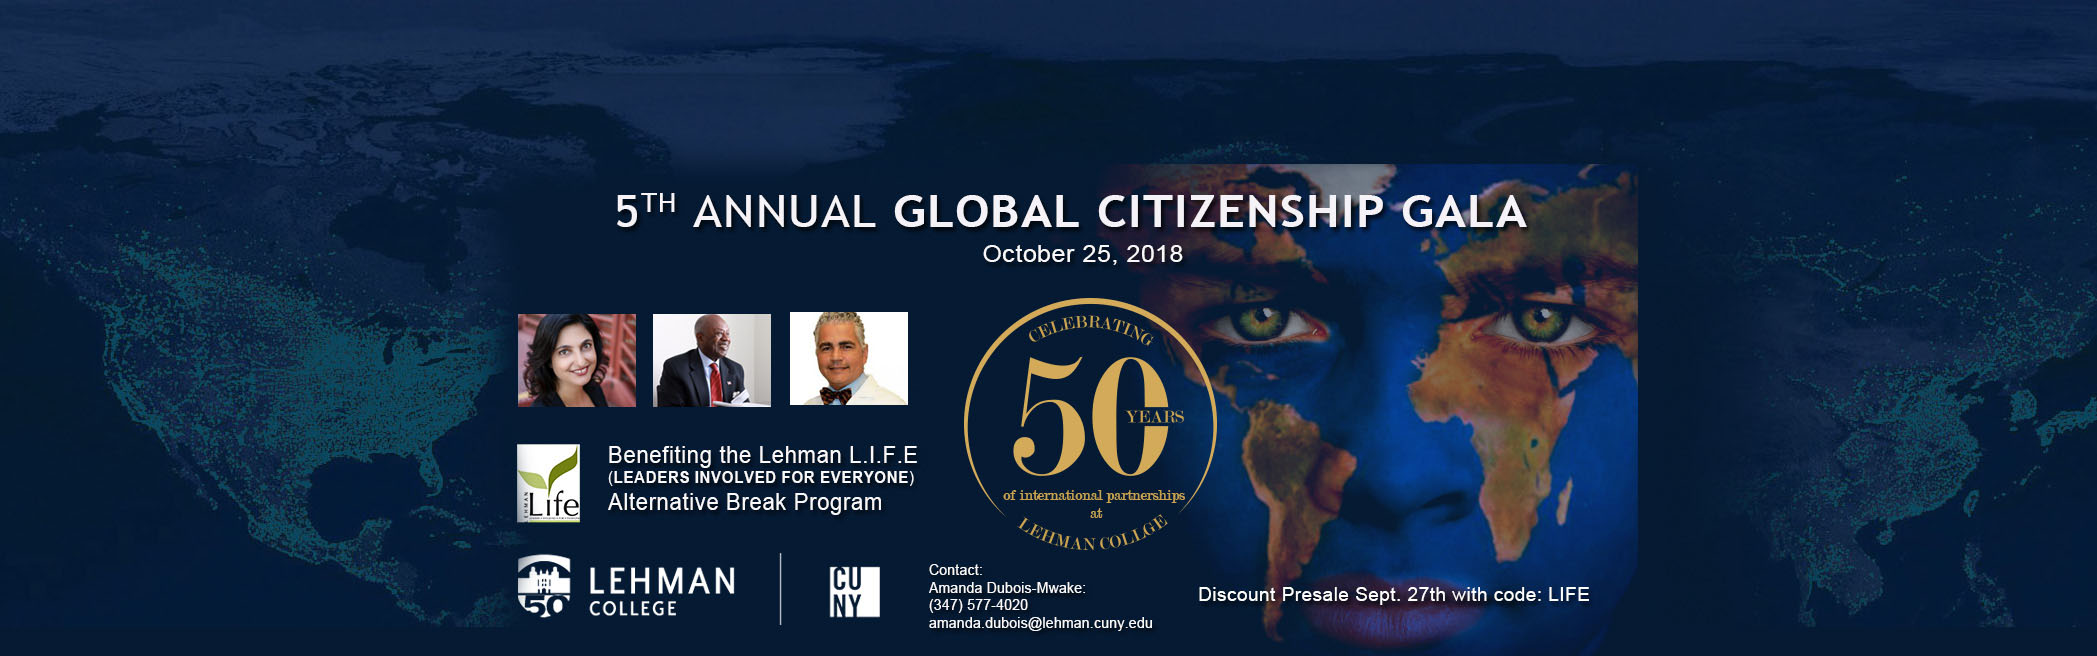 2018 Annual Global Citizenship Gala